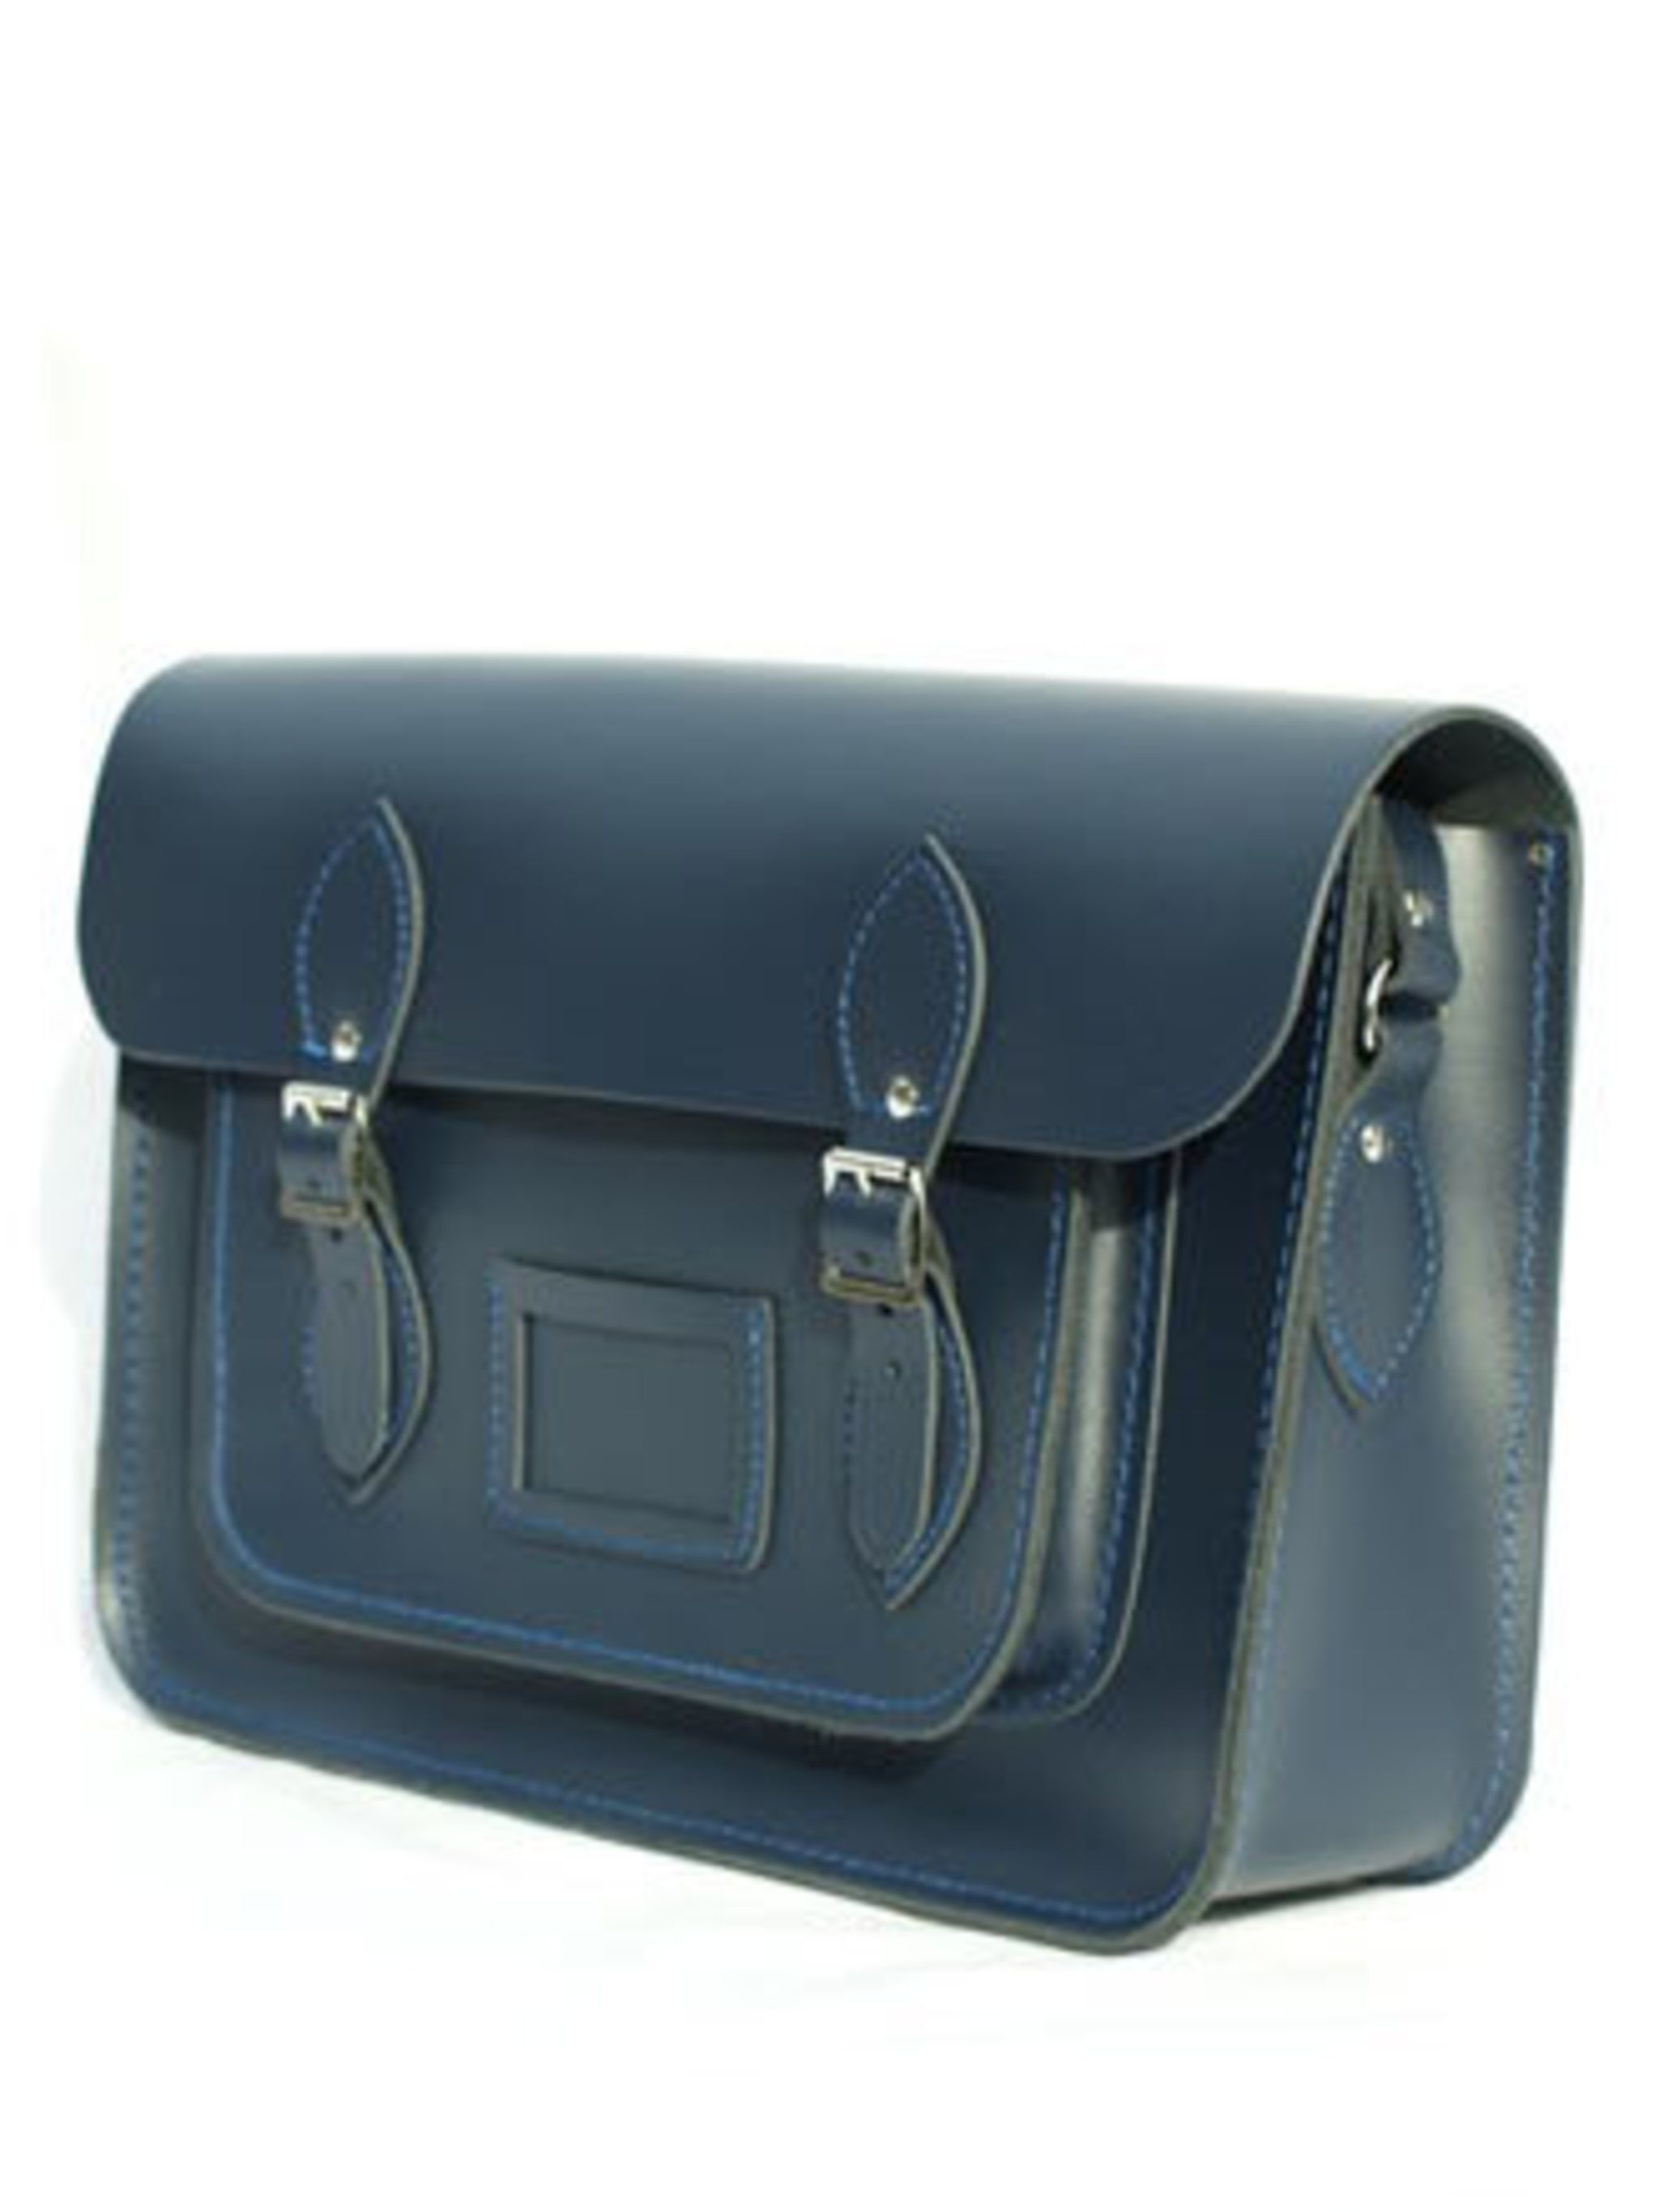 "<p>This spring/summer utility is a big trend. Accessories like this satchel are not only nice to look at, they're practical too.</p><p>Leather satchel, £66.39 by <a href=""http://www.cambridgesatchel.co.uk/15-navy-satchel-118-p.asp"">The Cambridge Satchel C"